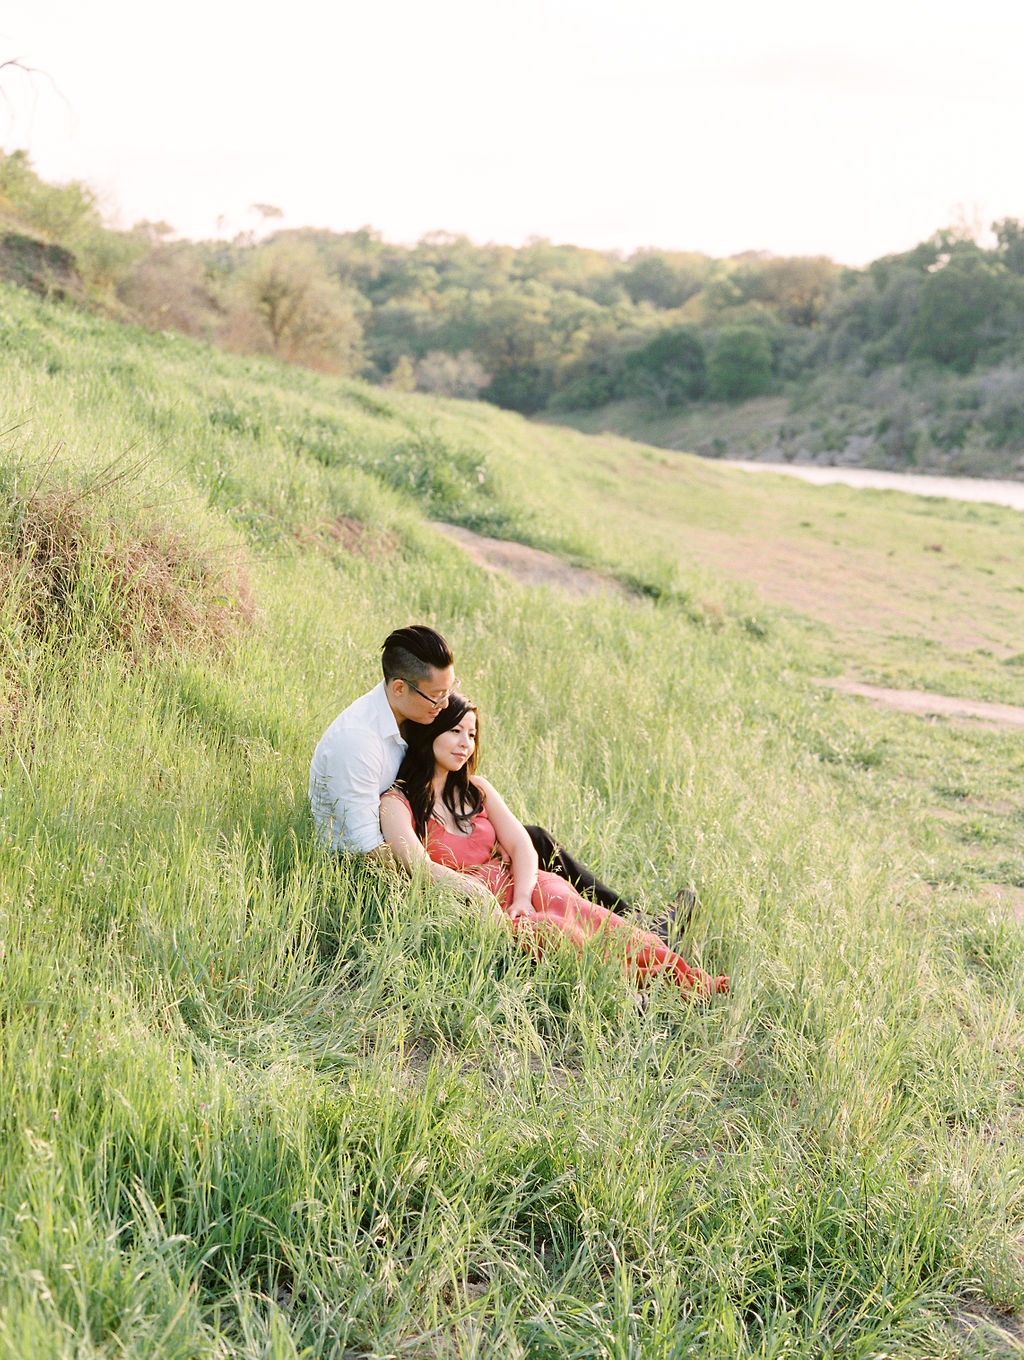 Austin-Film-Wedding-Photographer-Engagement-Session-Fun-adventure-outdoor-fine-art-20.jpg